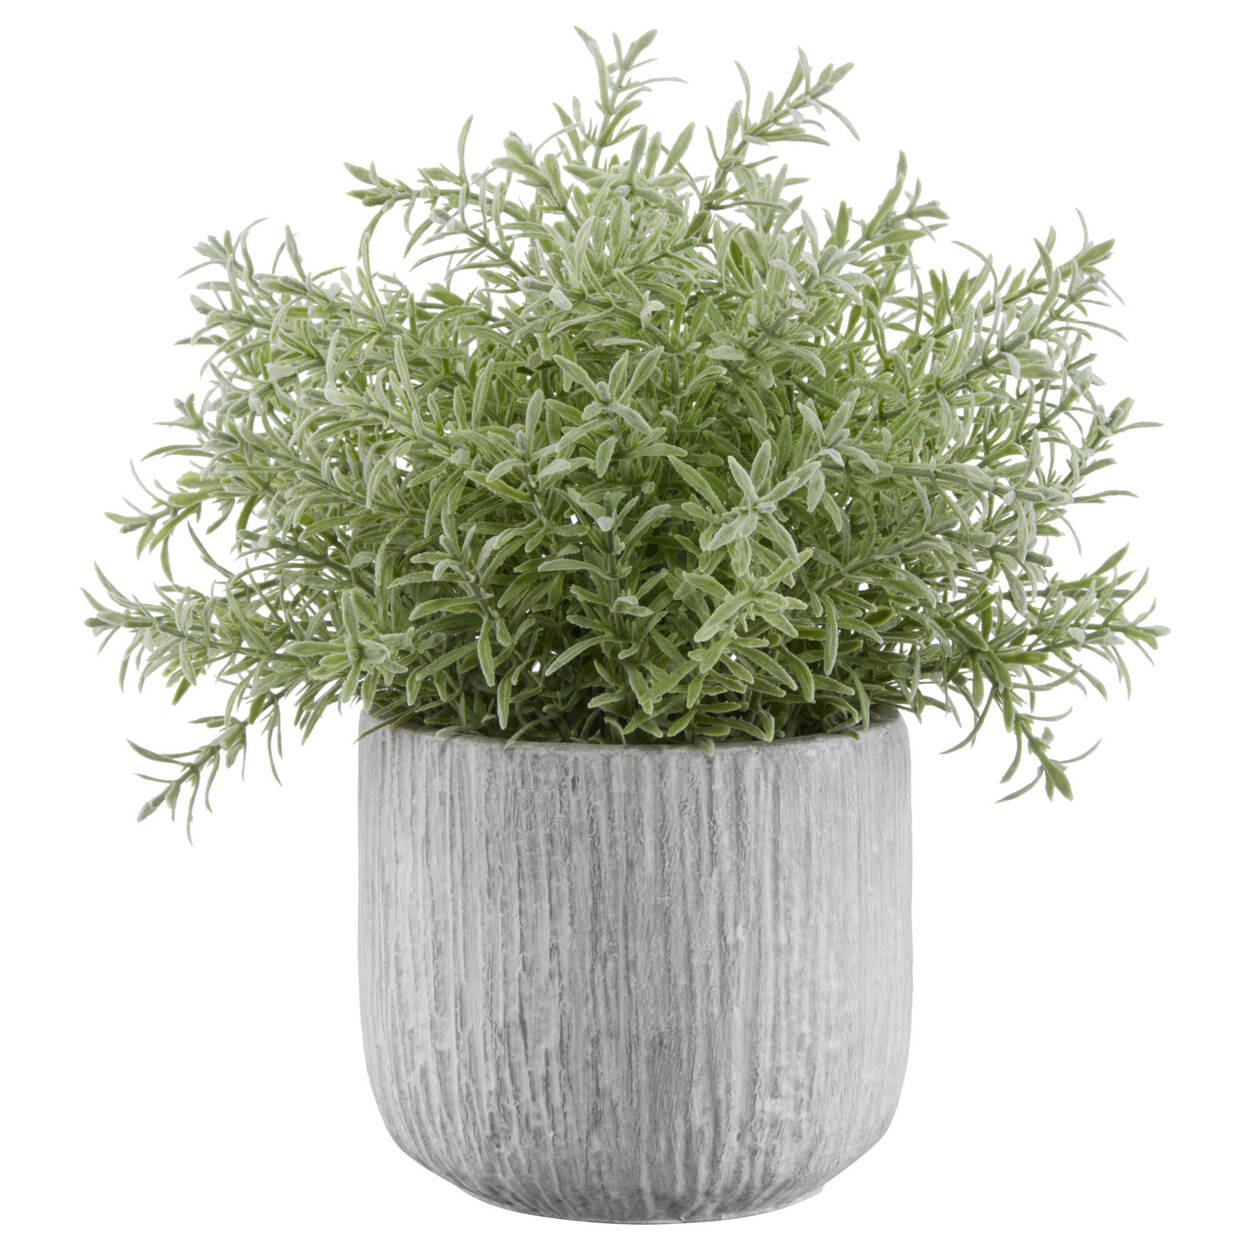 Herb in Cement Bowl